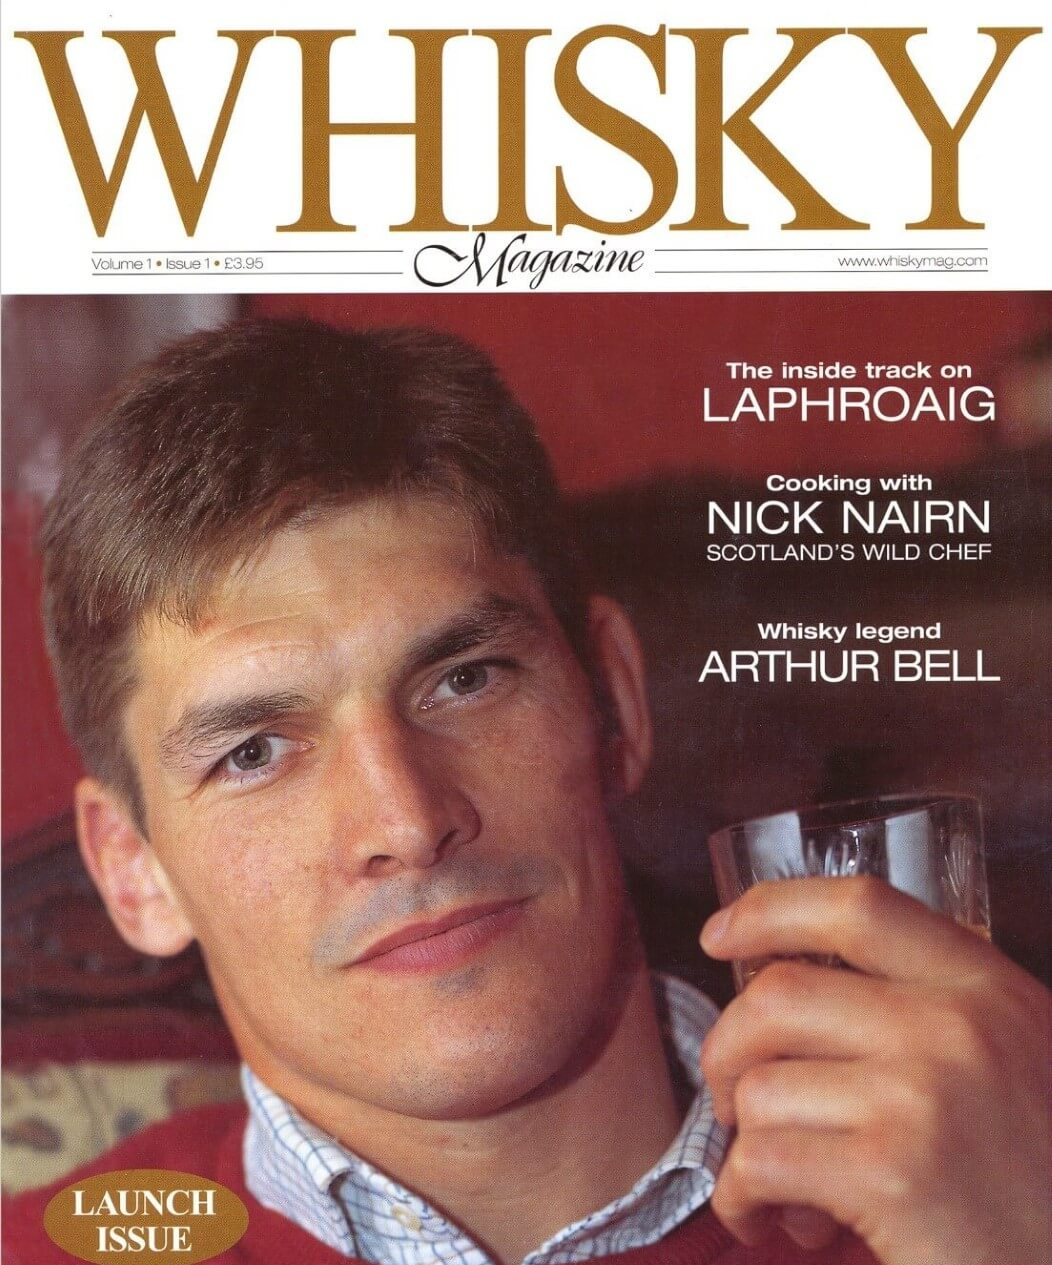 The cover of Whisky Magazine issue #1